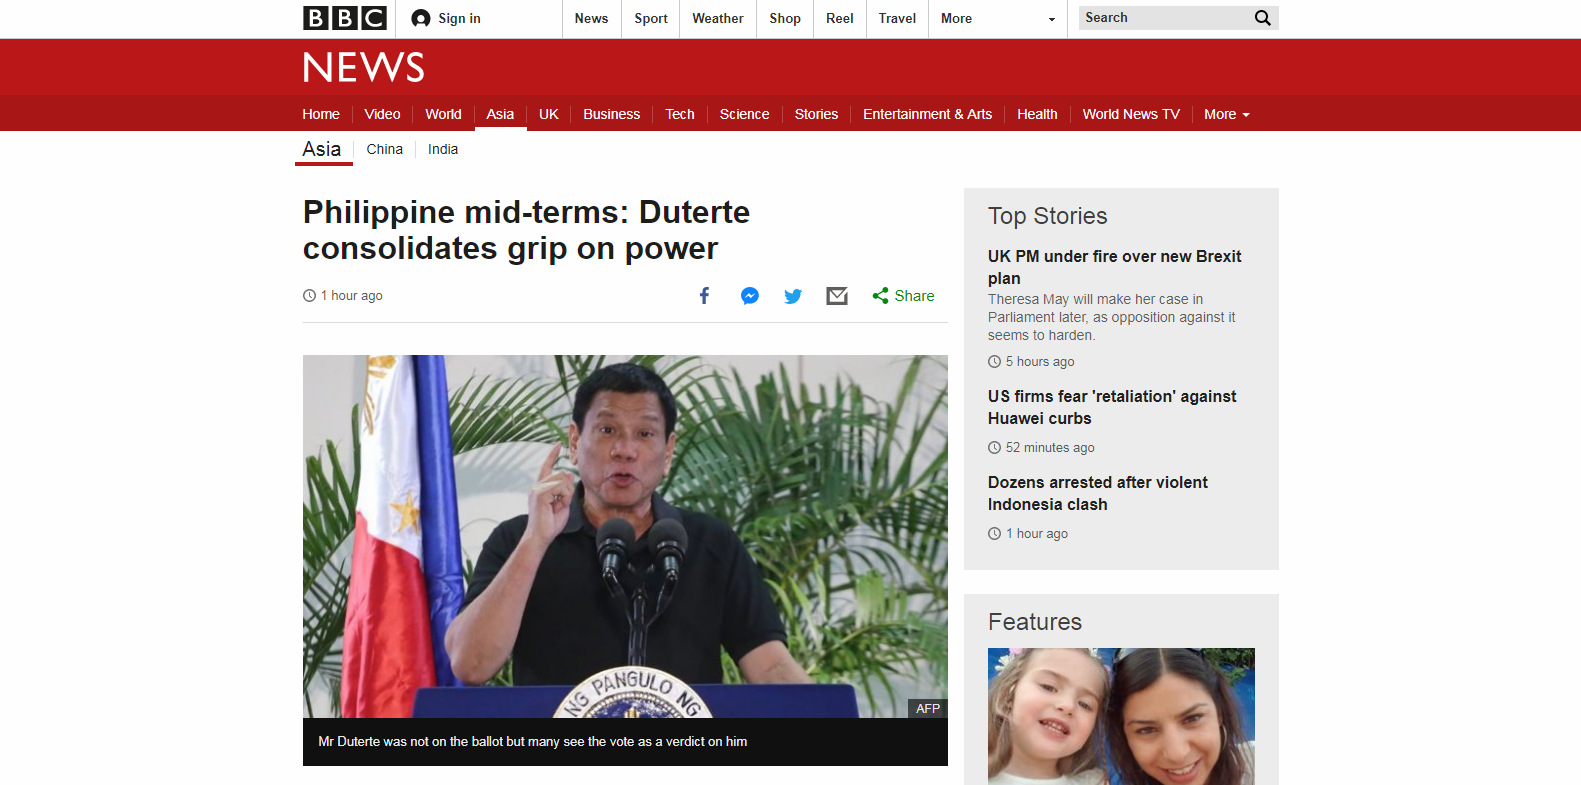 Philippine mid-terms: Duterte consolidates grip on power